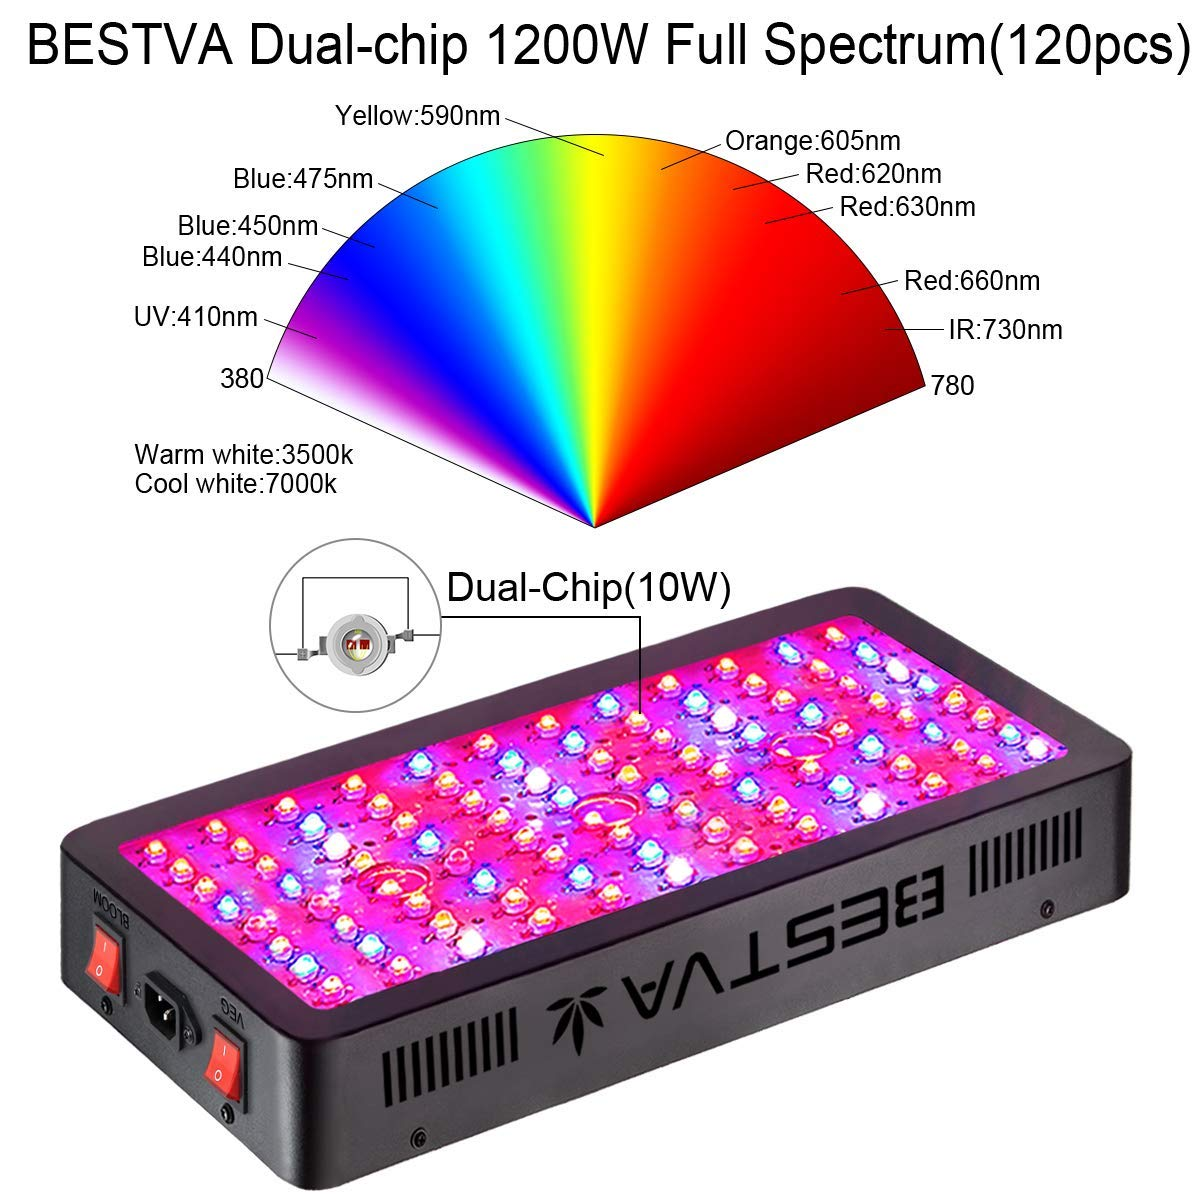 hight resolution of spectrum composition of the bestva dc 1200w led grow light consists of color band ranges from 380nm 780nm this full spectrum includes warm and cool white